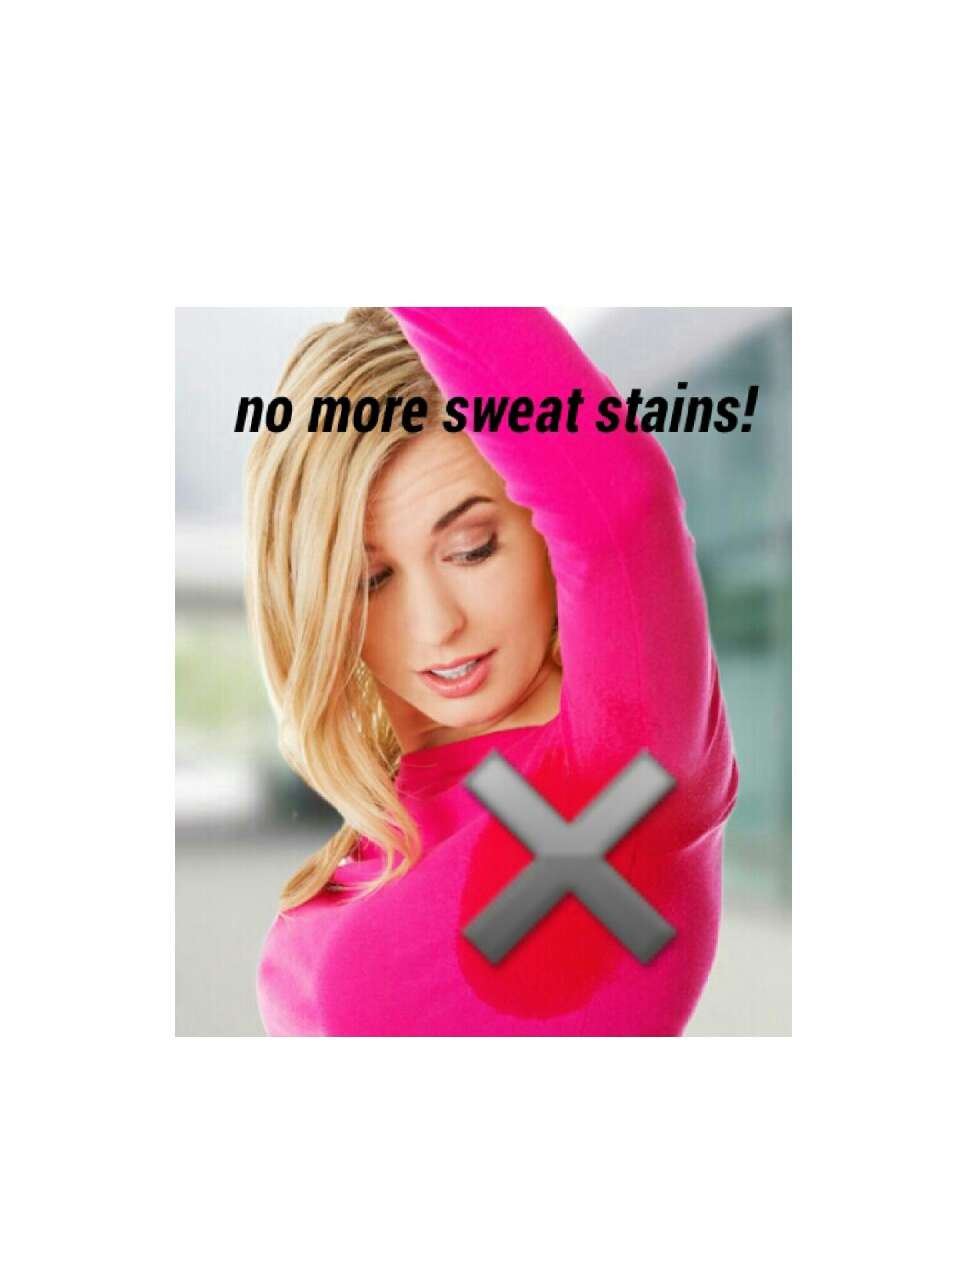 Are you tired of having sweat stains?